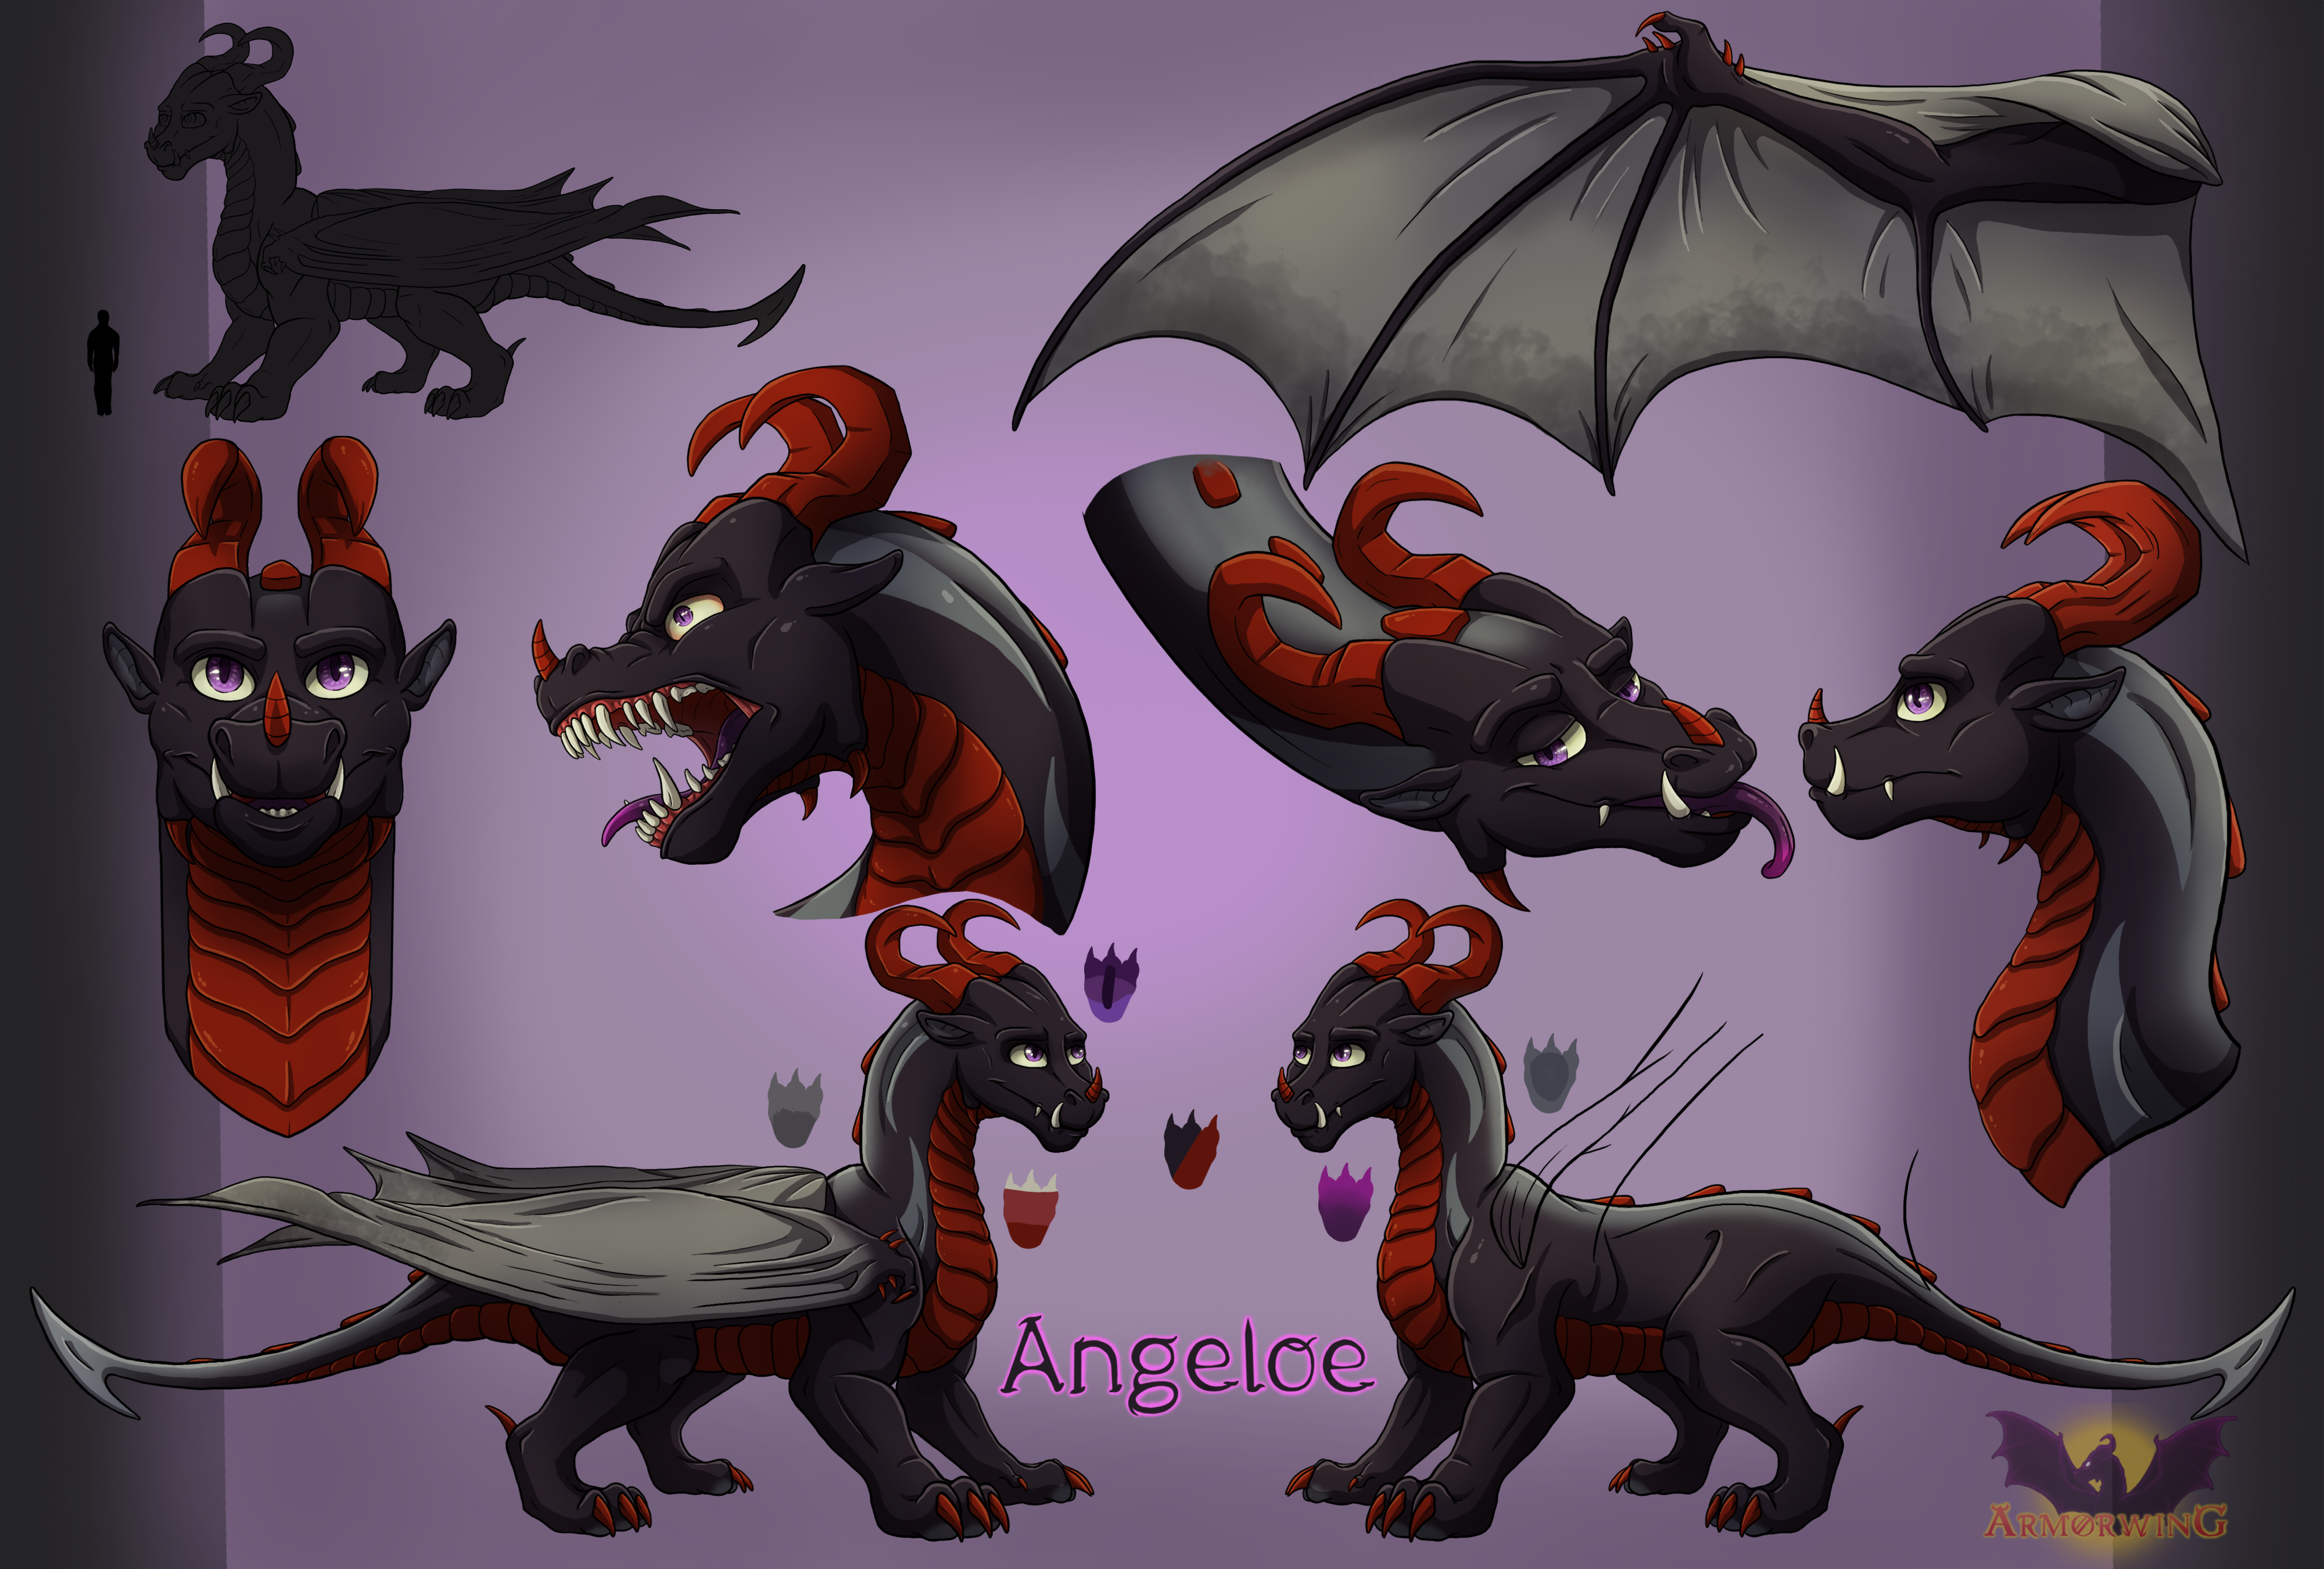 Angeloe - Reference Sheet